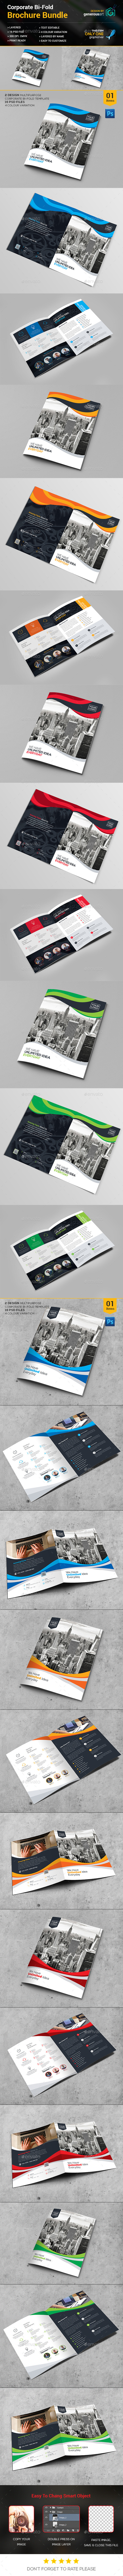 Bi-fold Brochure Bundle_2 in 1 - Corporate Brochures